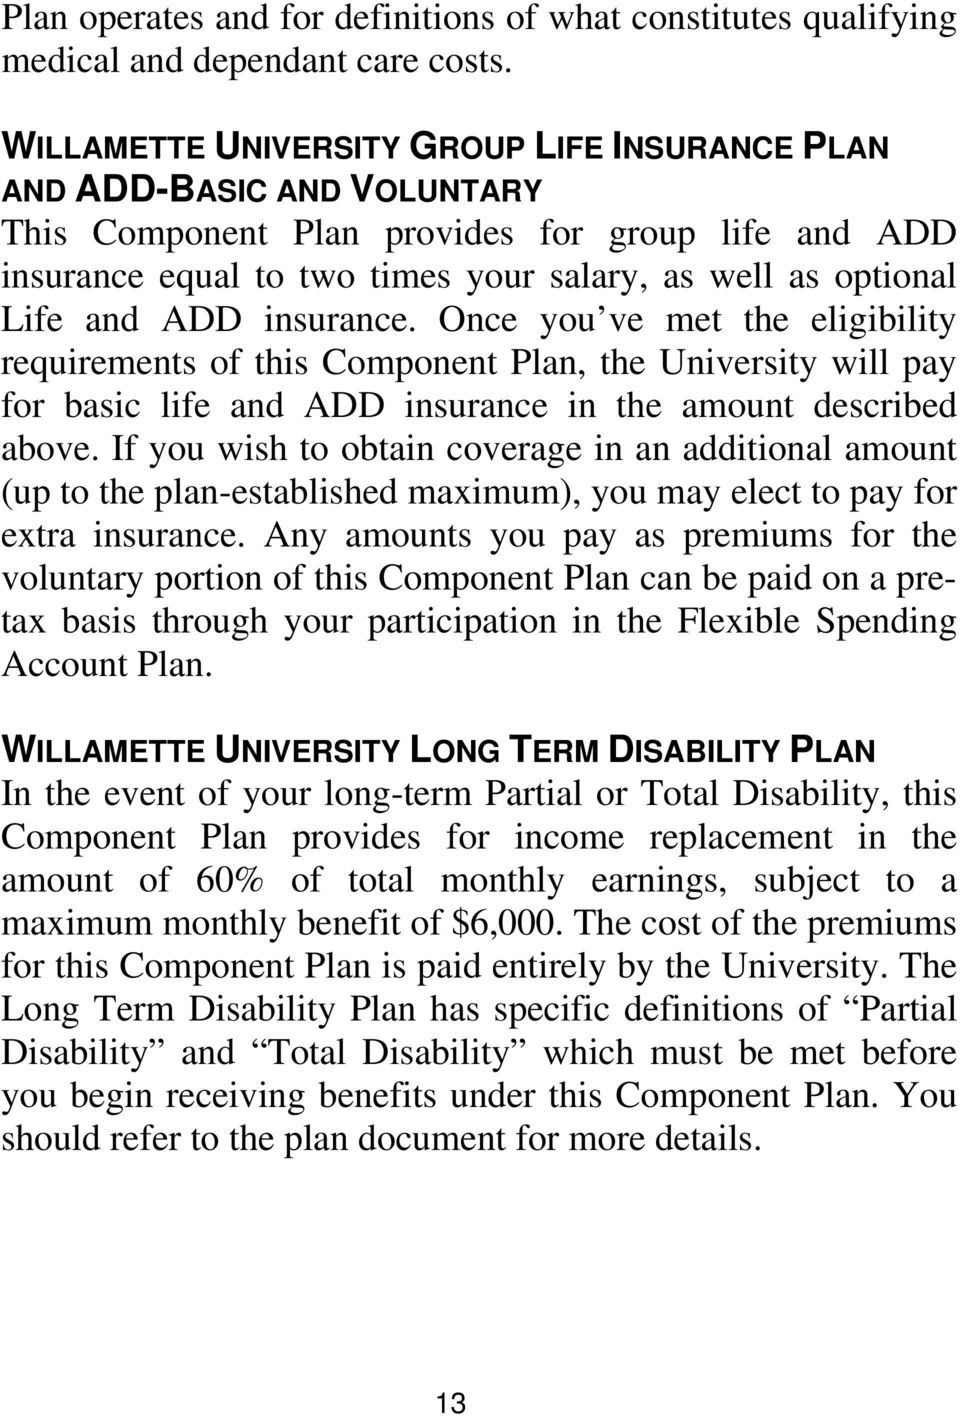 ADD insurance. Once you ve met the eligibility requirements of this Component Plan, the University will pay for basic life and ADD insurance in the amount described above.